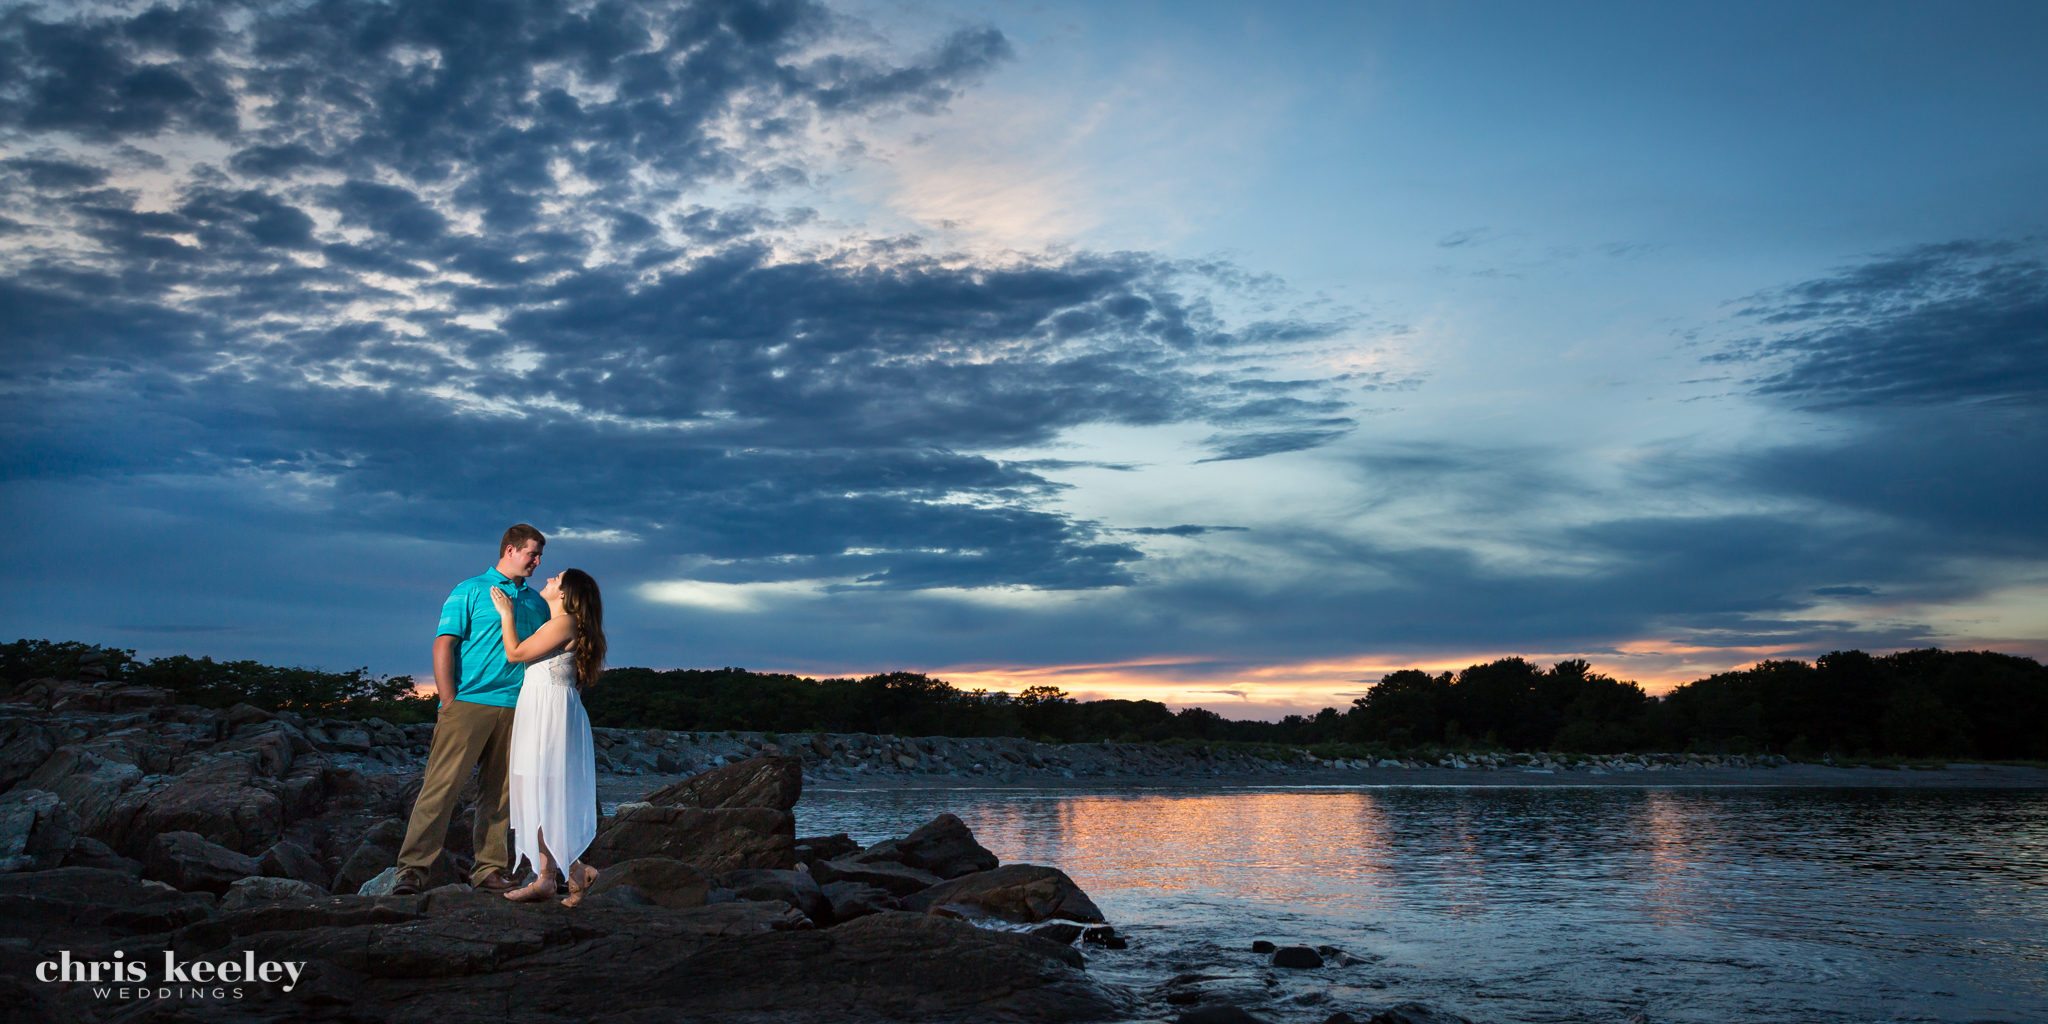 76-engagement-wedding-pictures-rye-new-hampshire-chris-keeley-weddings.jpg